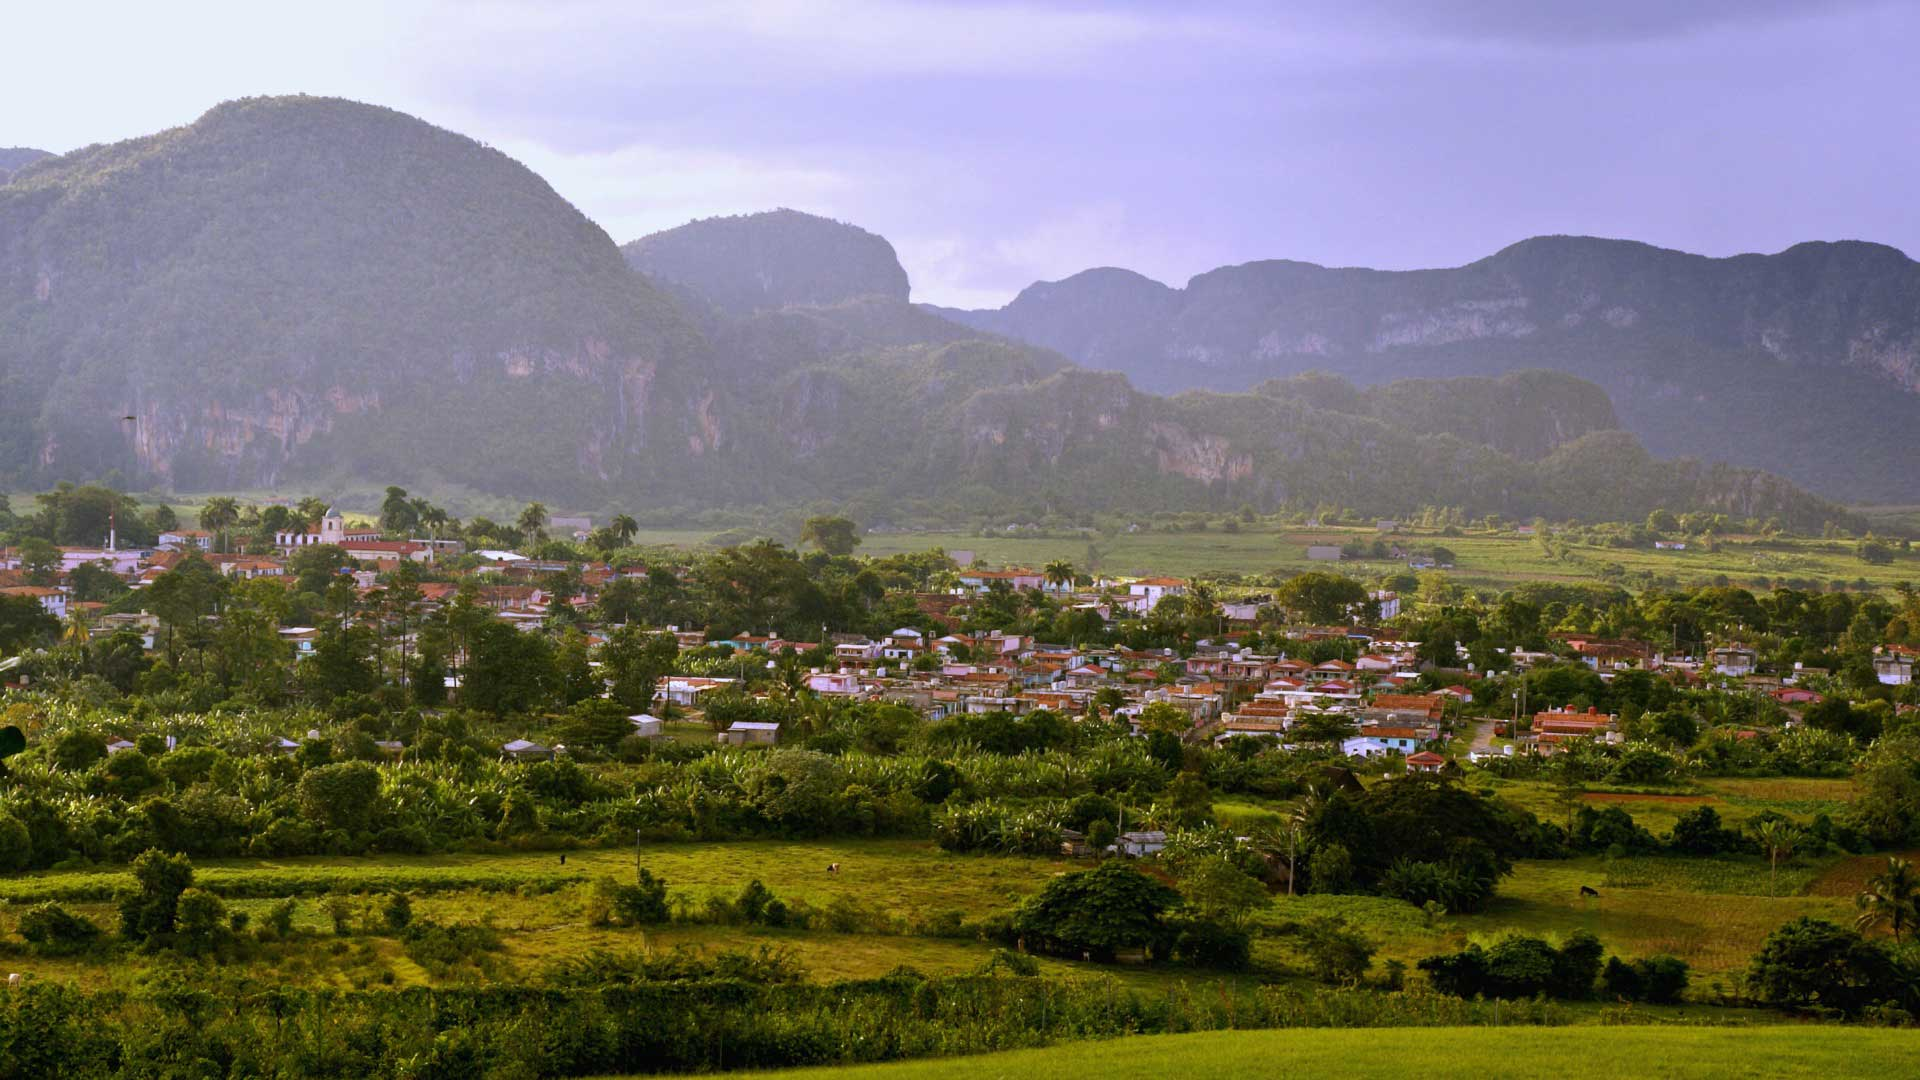 Valle de Vinales from above. Photo by Ovidiu Balaj